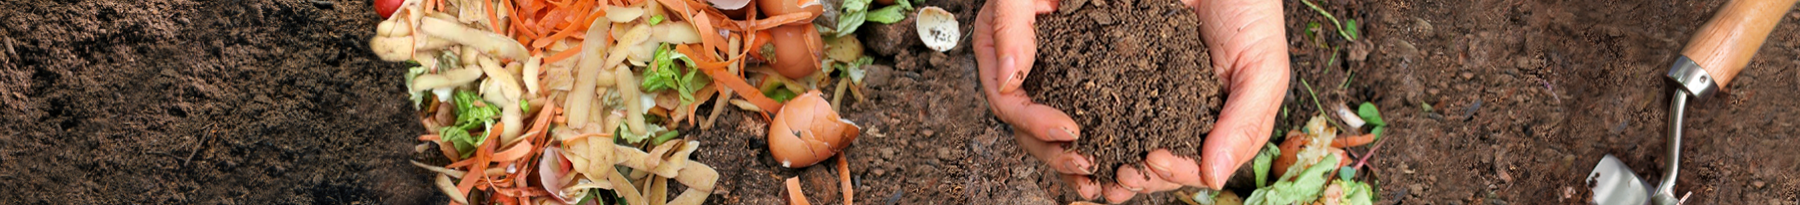 garden bed with vegetable peelings and hands holding soil